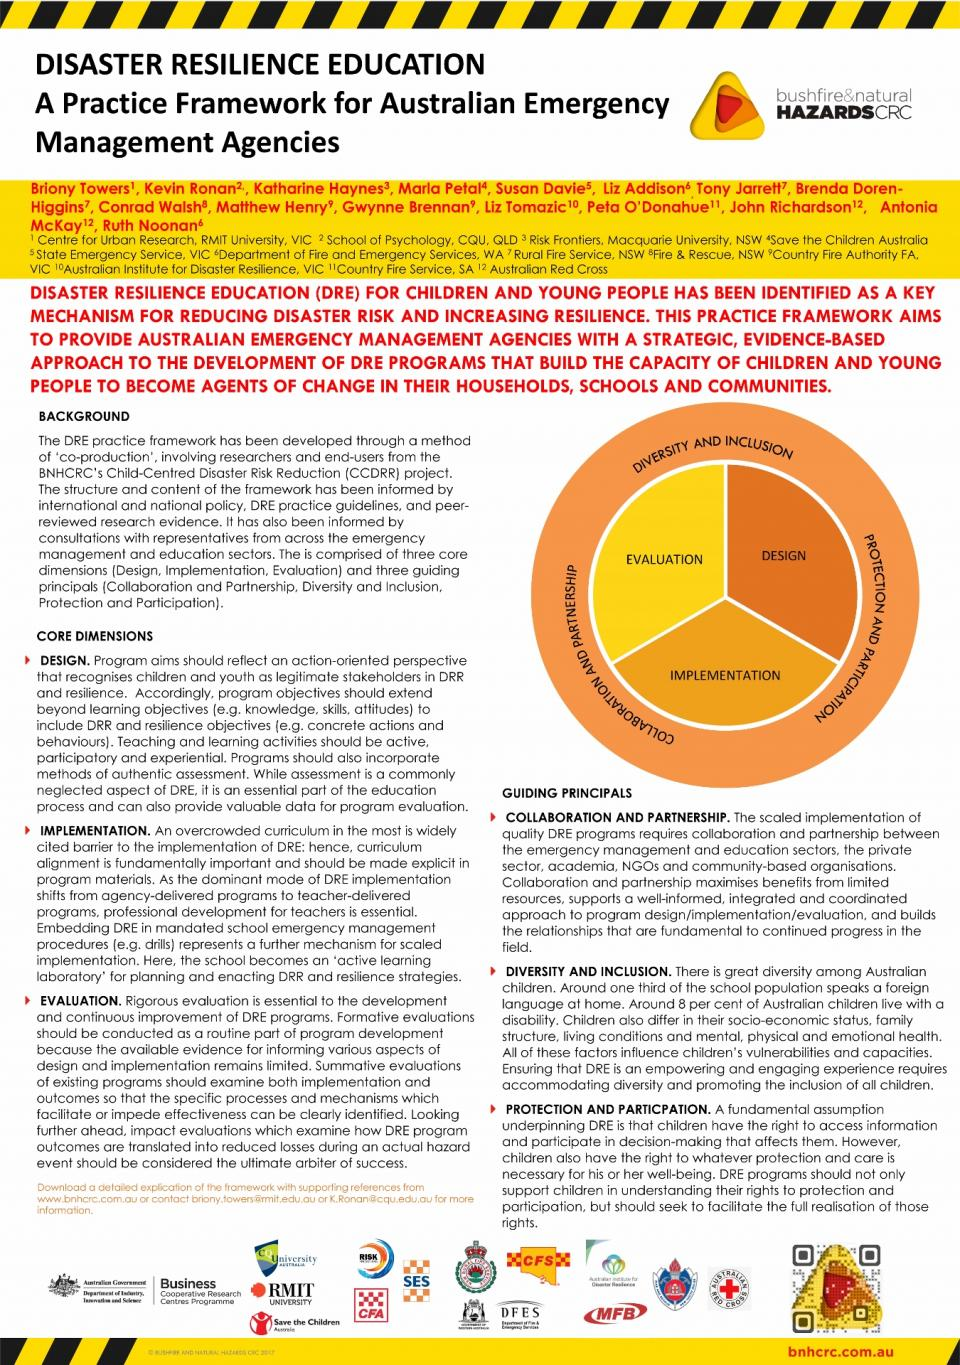 Disaster resilience education: a practice framework for Australian emergency management agencies